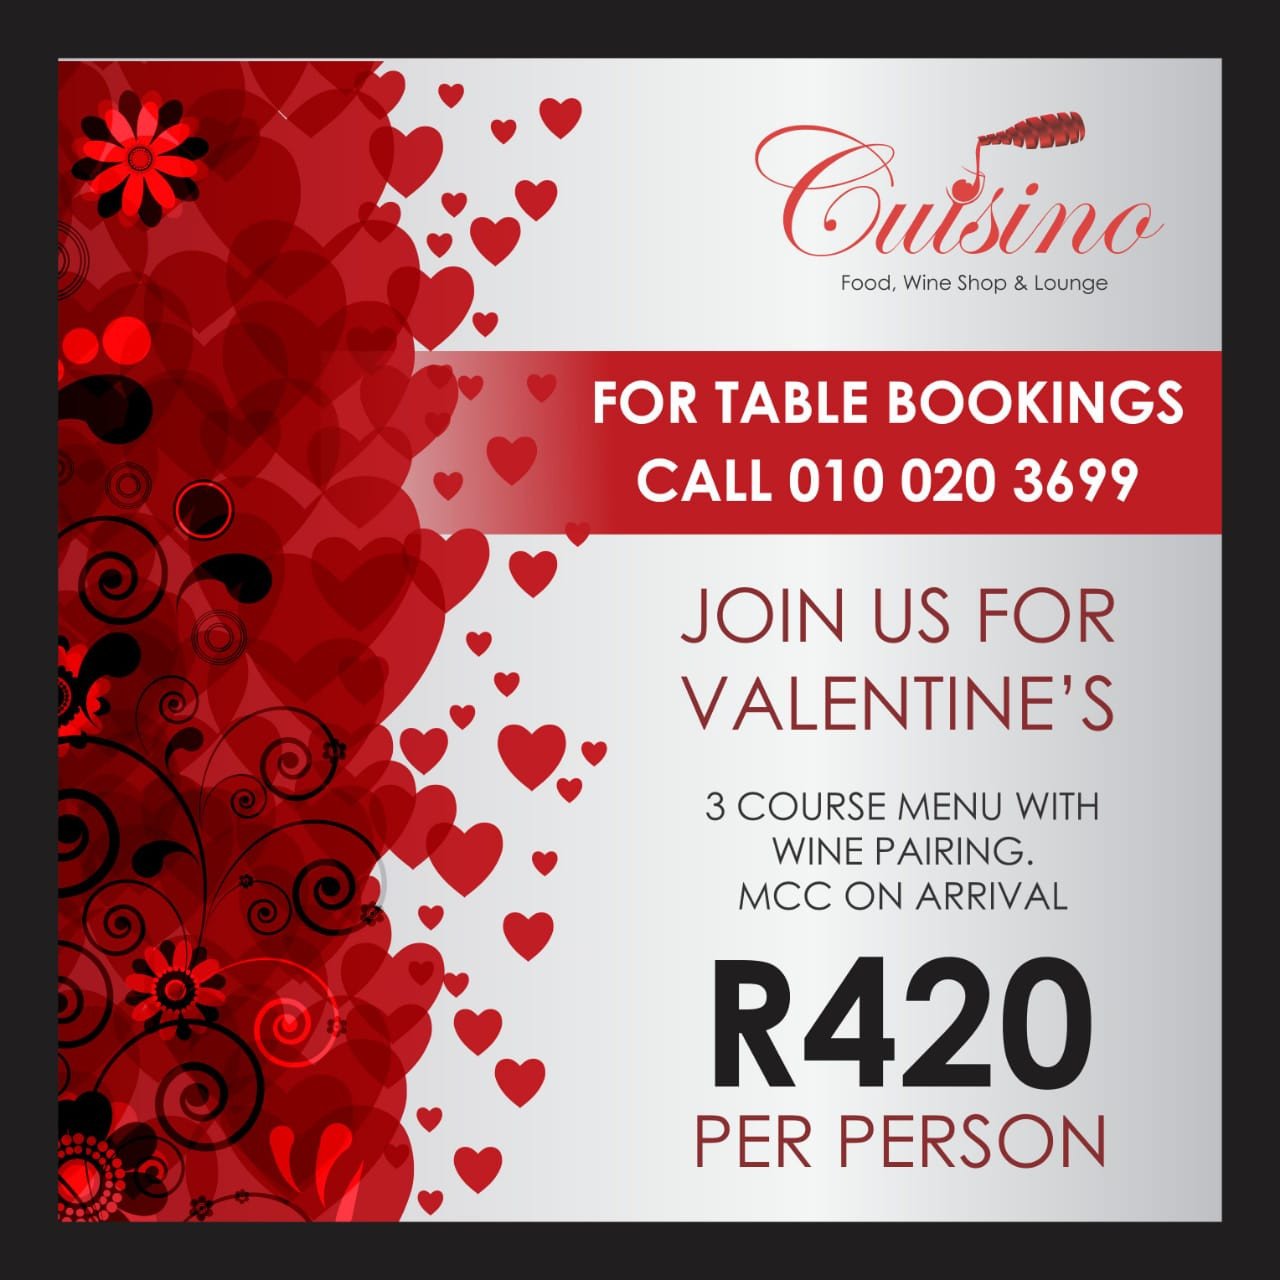 Cuisino Valentine's Day special